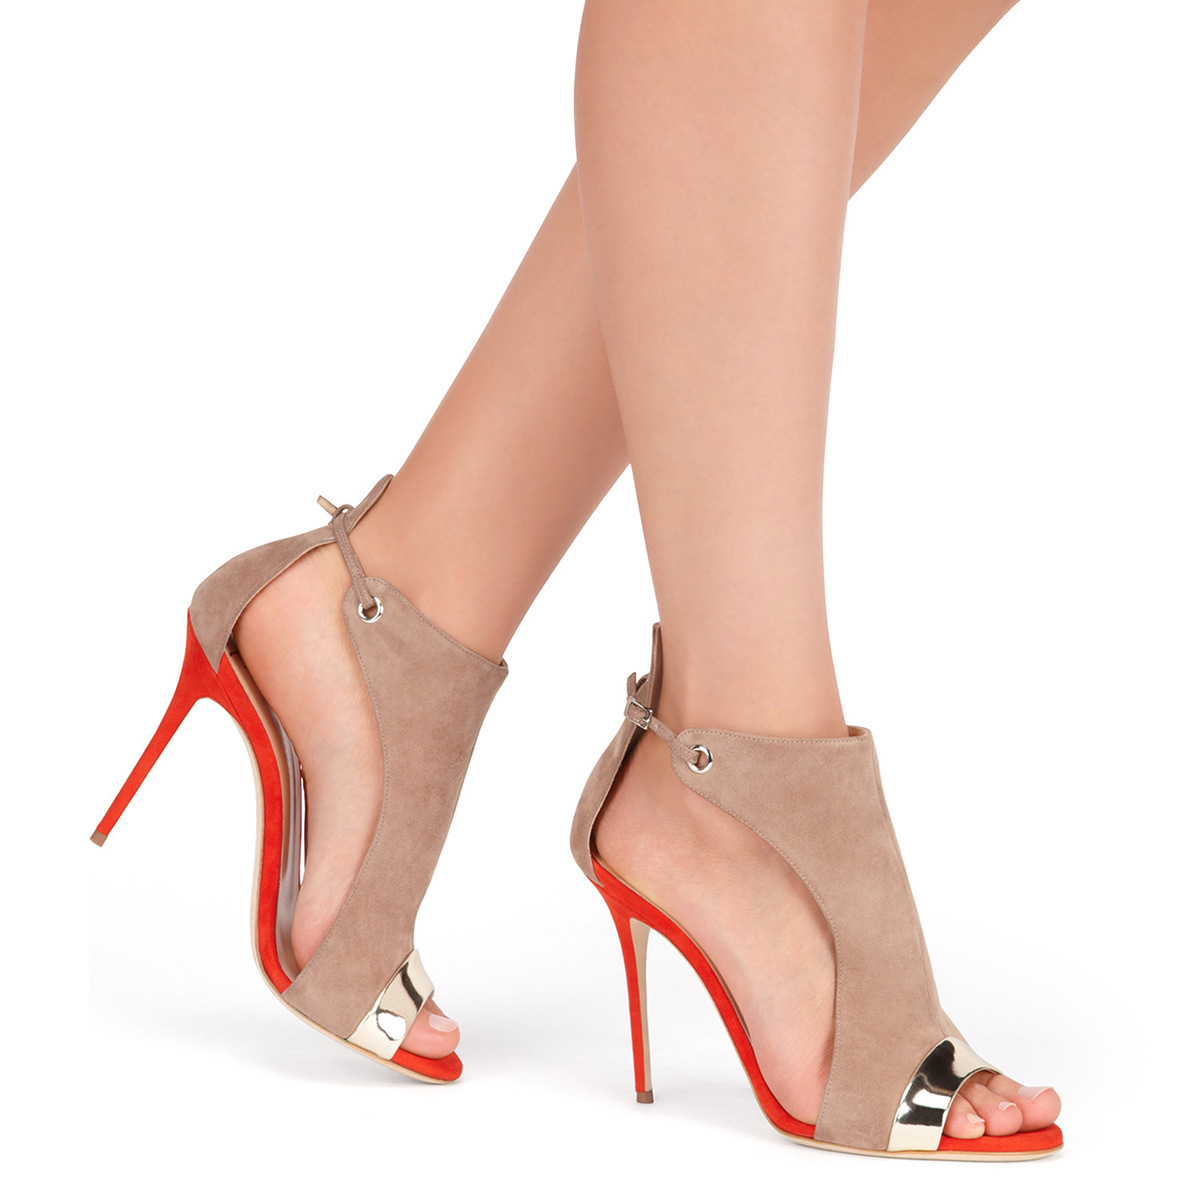 Brand Fashion Women Pumps Ankle Strap High Heel Pumps Shoes for Women Sexy Peep Toe High Heels Sandals Party Wedding Shoes Woman fashion women pumps gladiator peep toe women high heels shoes women casual thin heel buckle strap summer high heel pumps